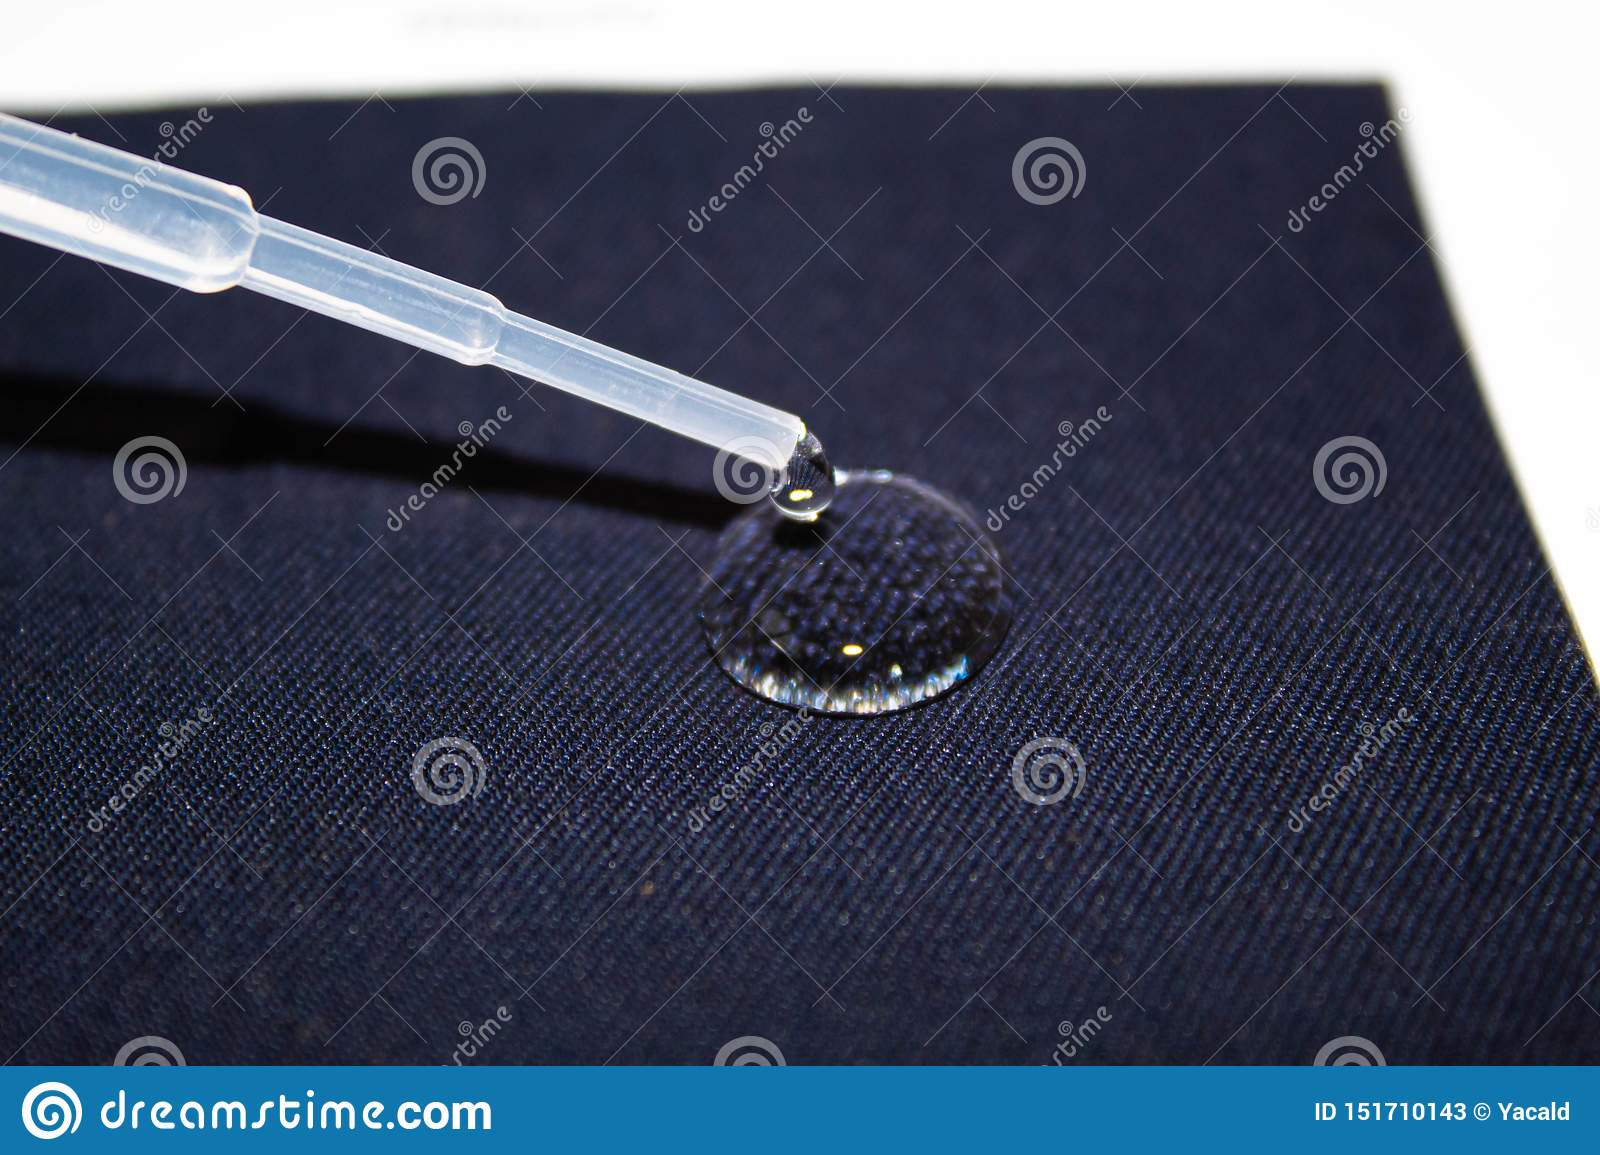 Drop of water on a piece of fabric